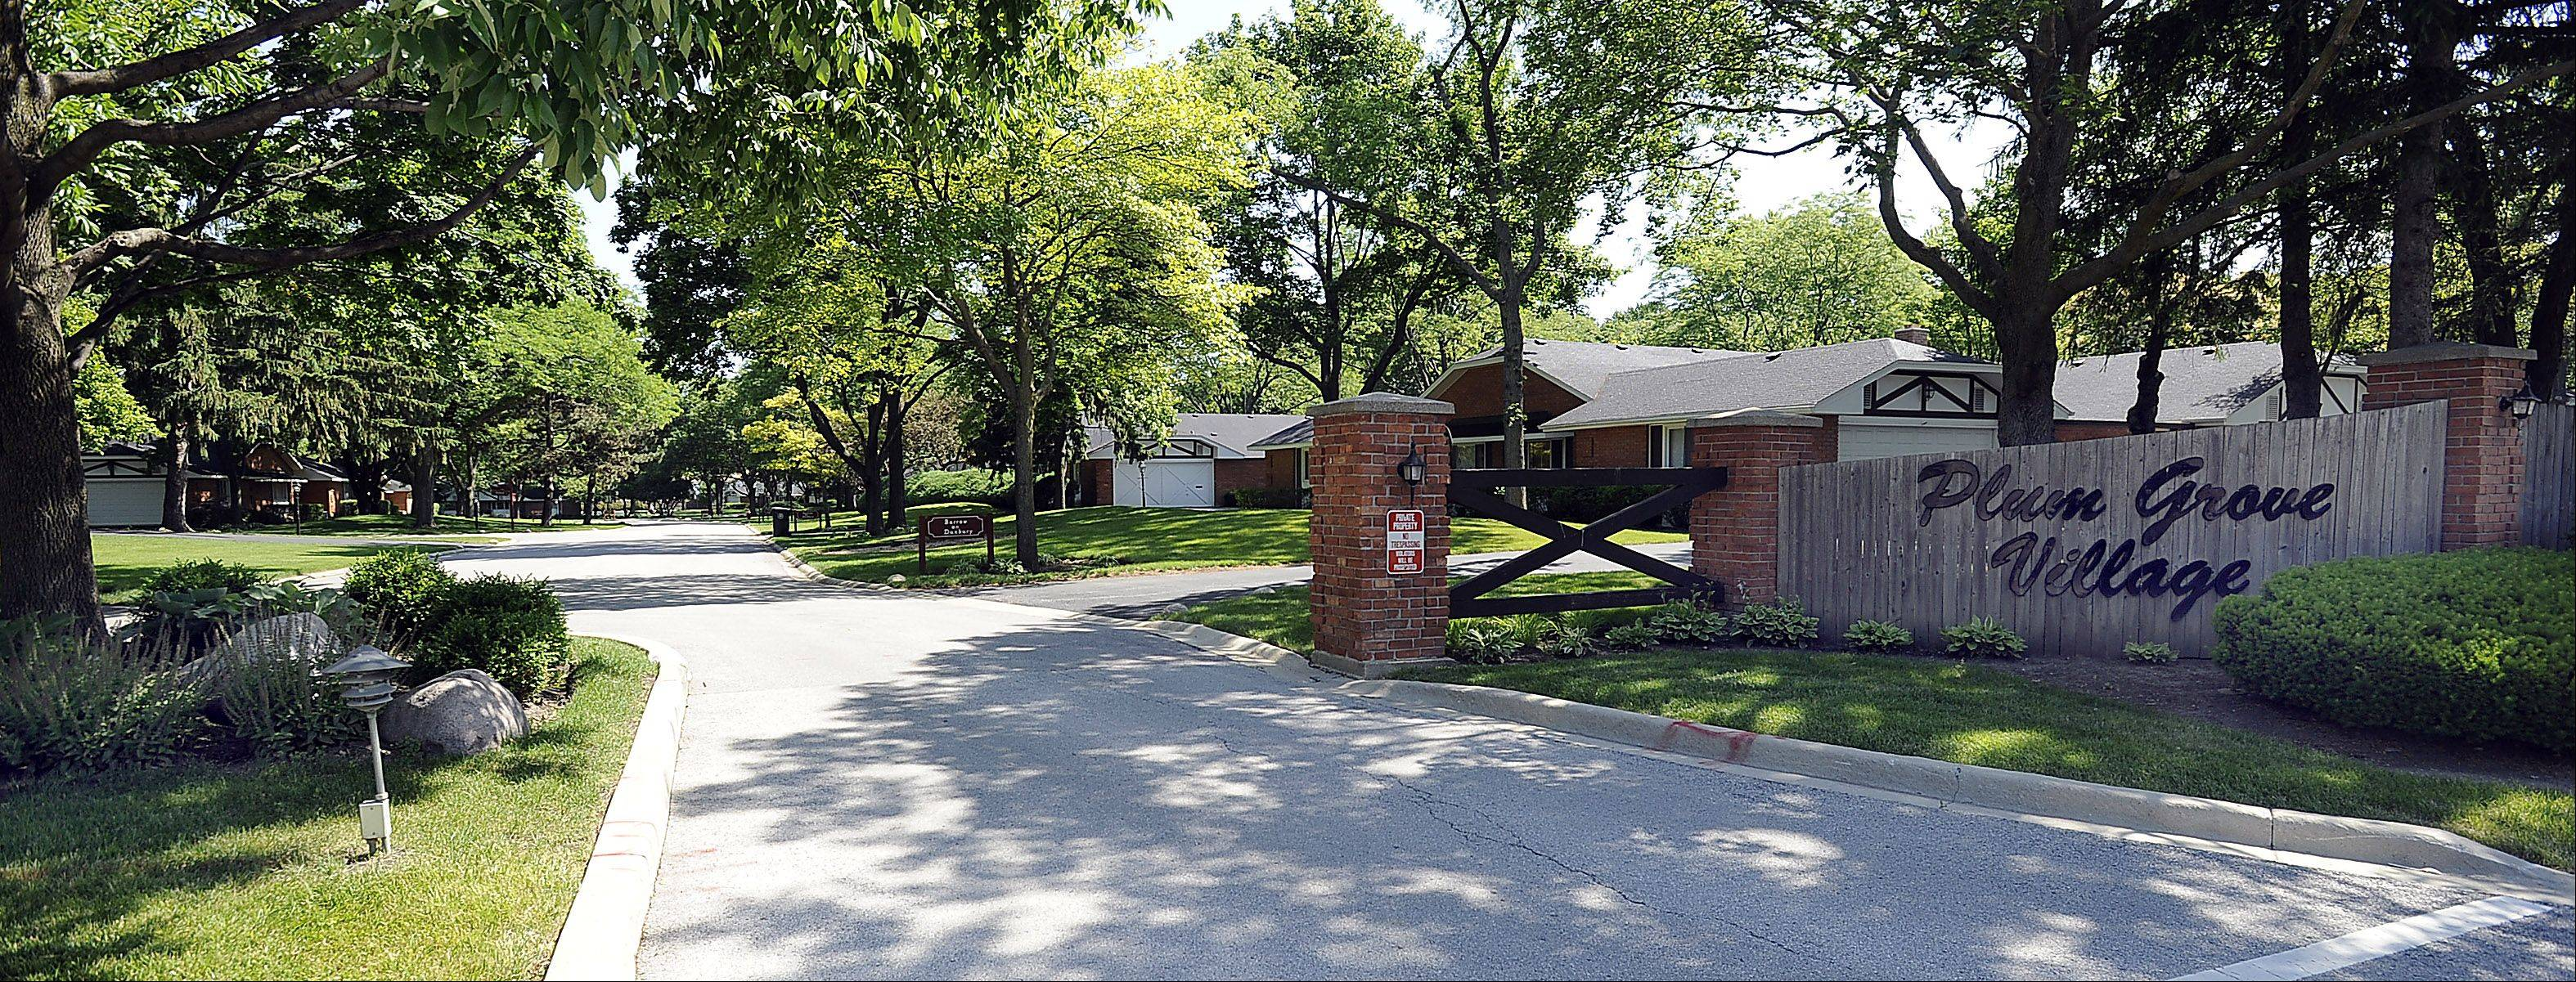 The mature trees and landscaping found in Plum Grove Village makes for a serene neighborhood.